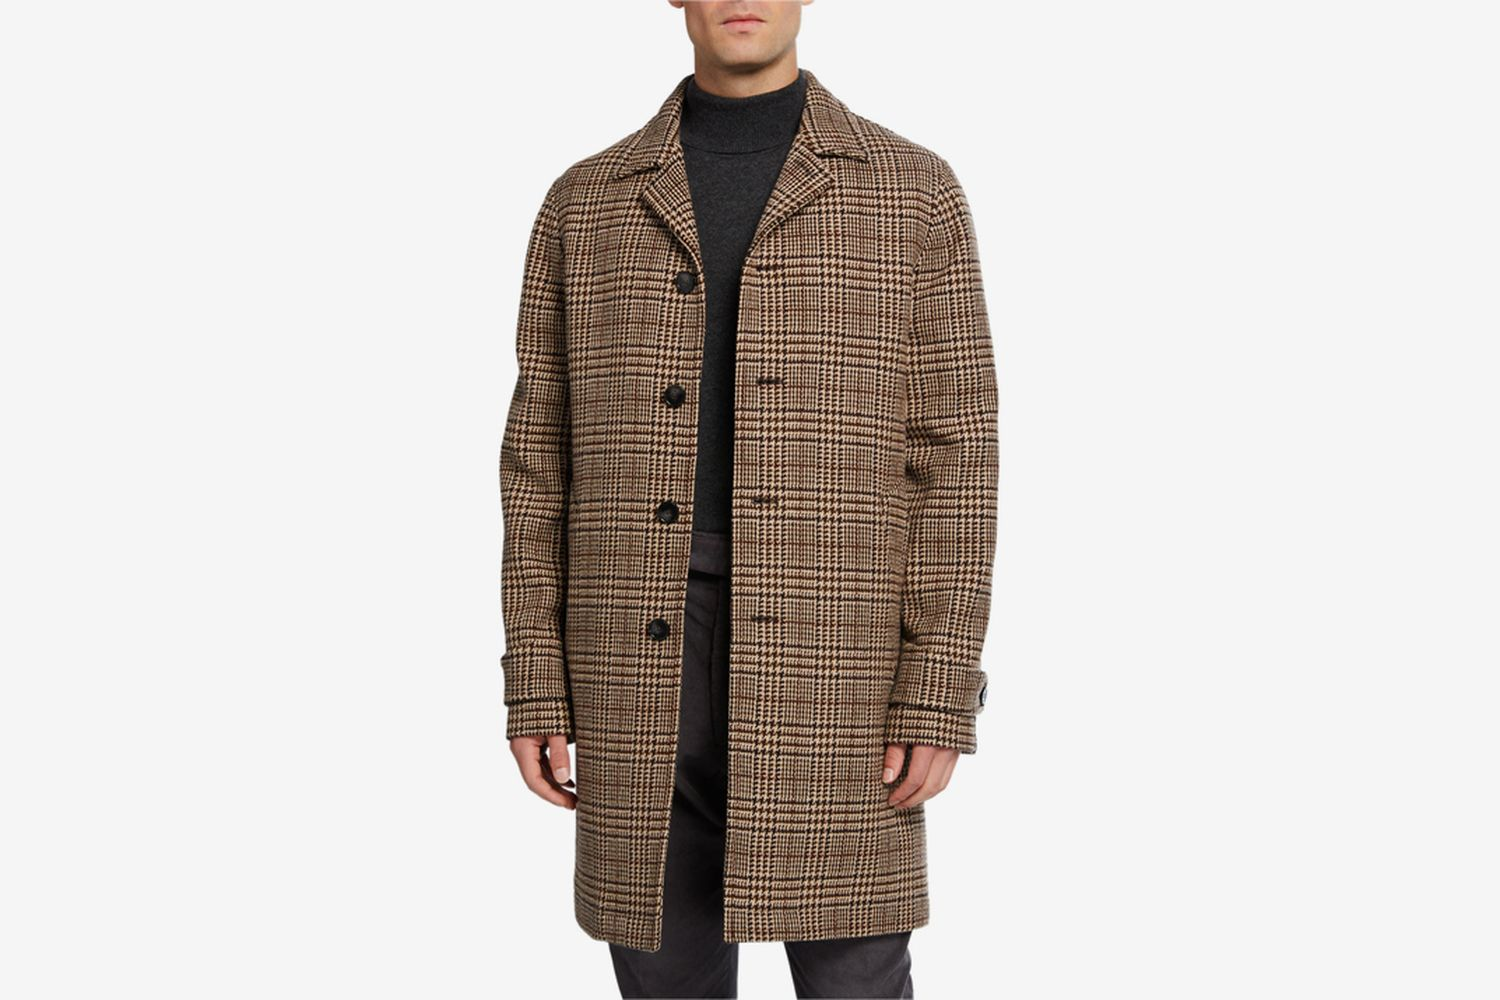 Stephane Glenn Plaid Wool Overcoat